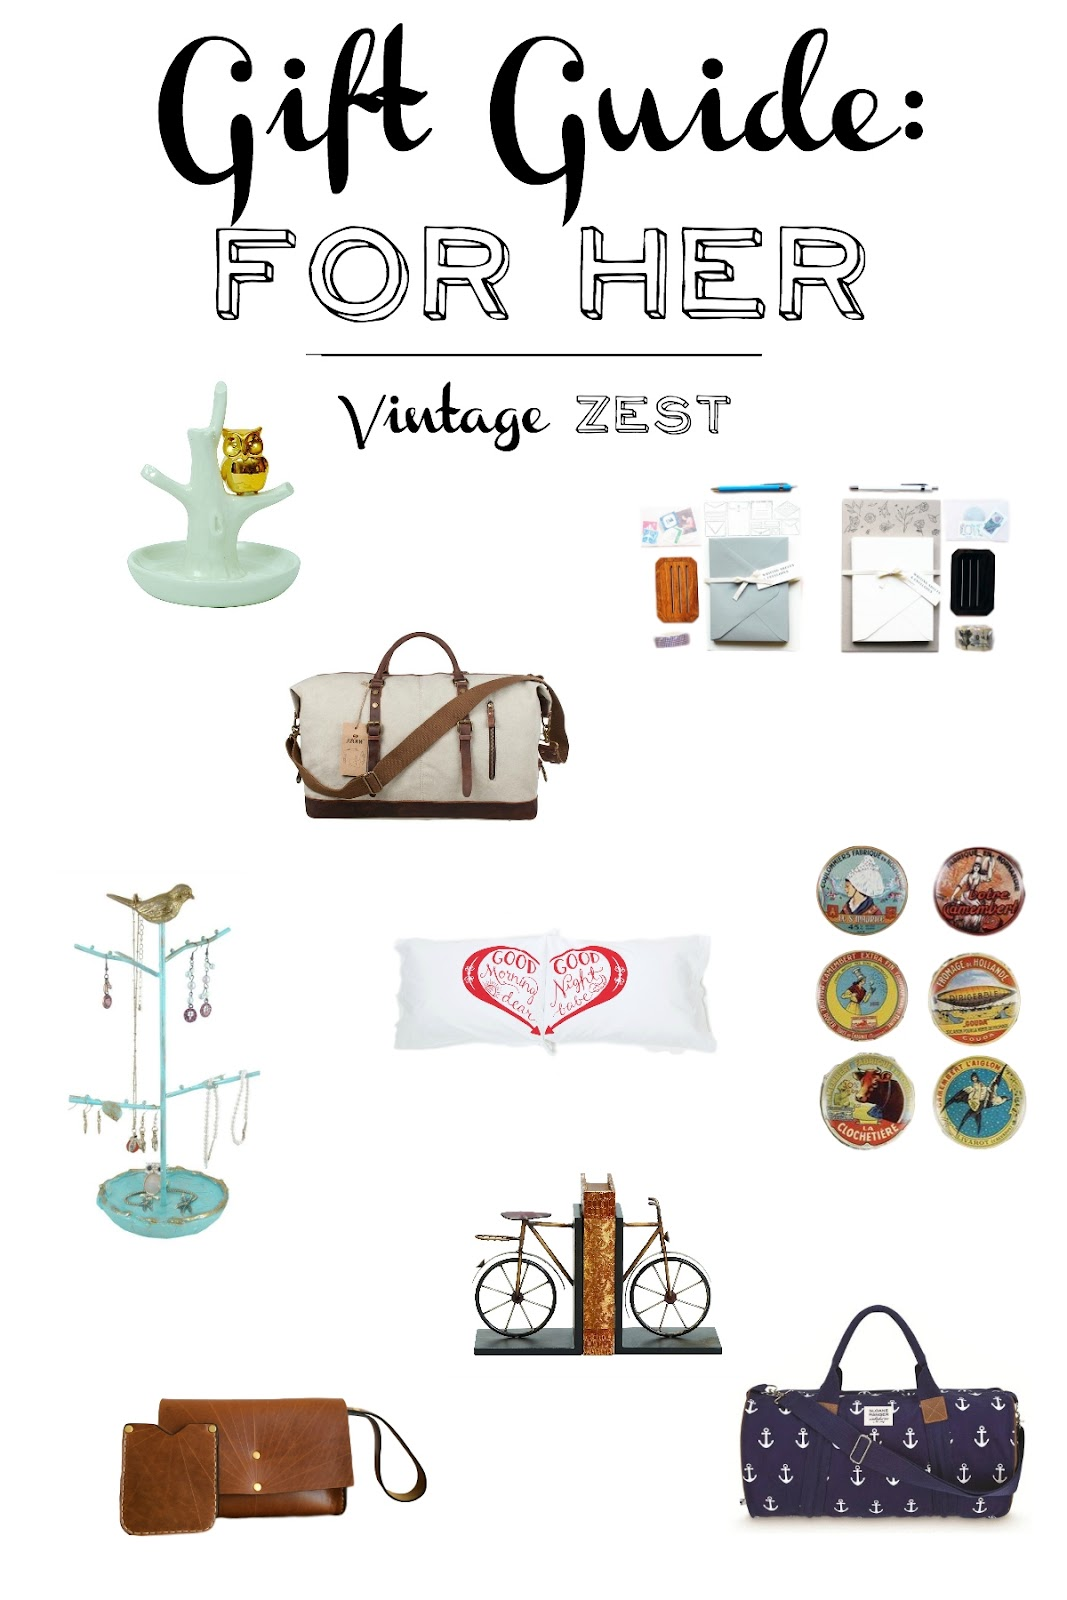 Gift Guide For Her on Diane's Vintage Zest!